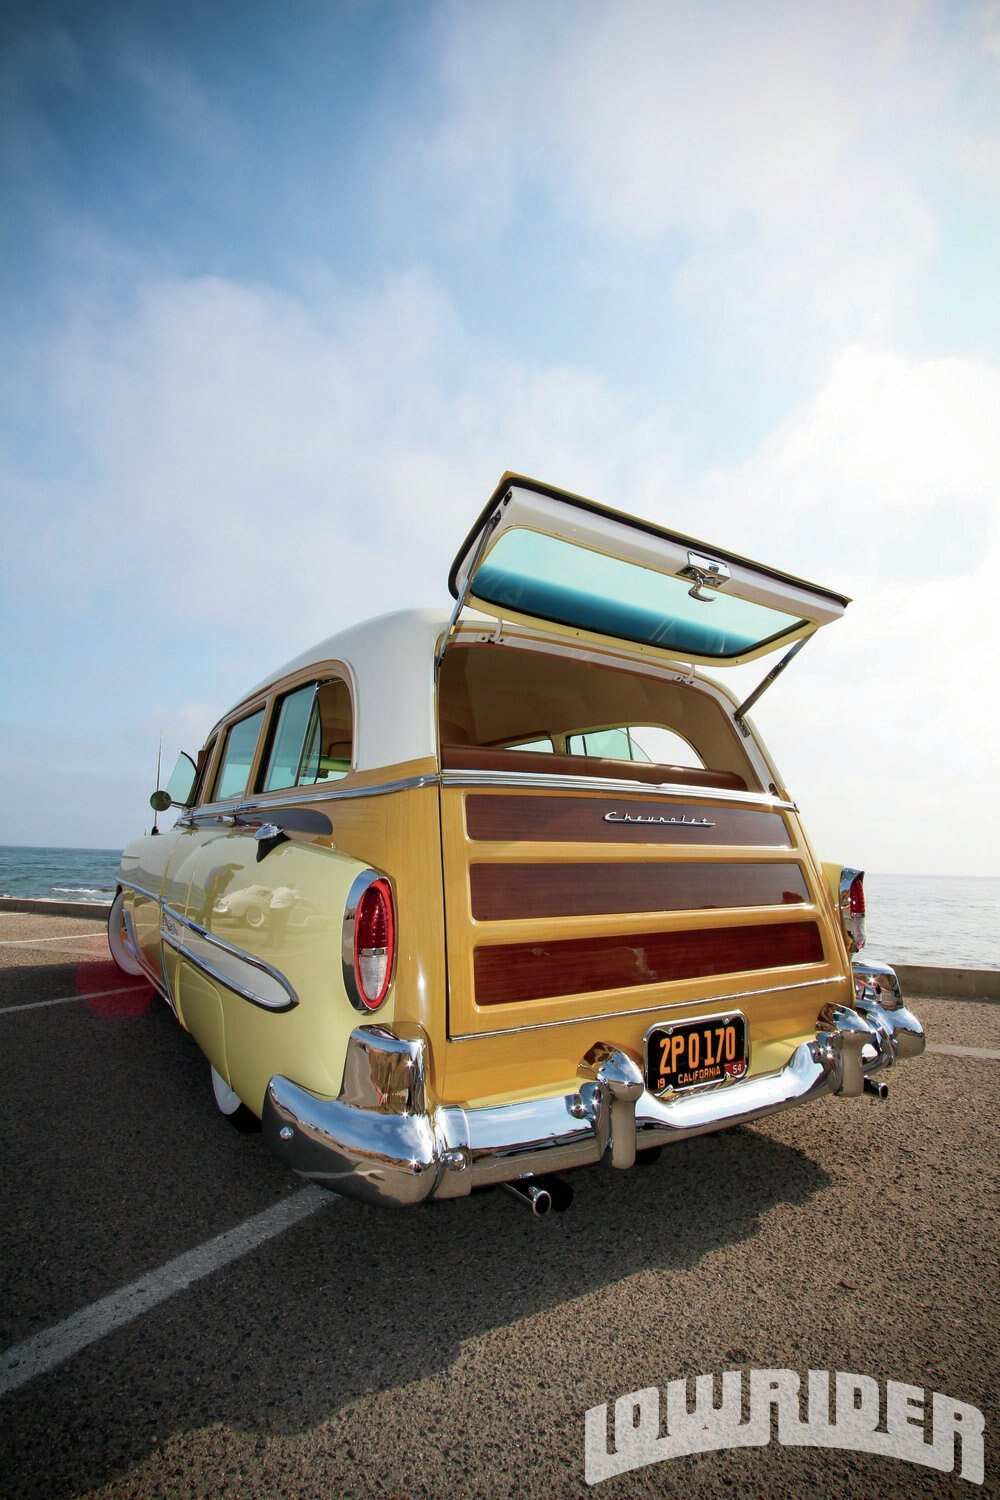 Cars With 3 Rows Of Seats >> 1954 Chevrolet Wagon - Lowrider Magazine